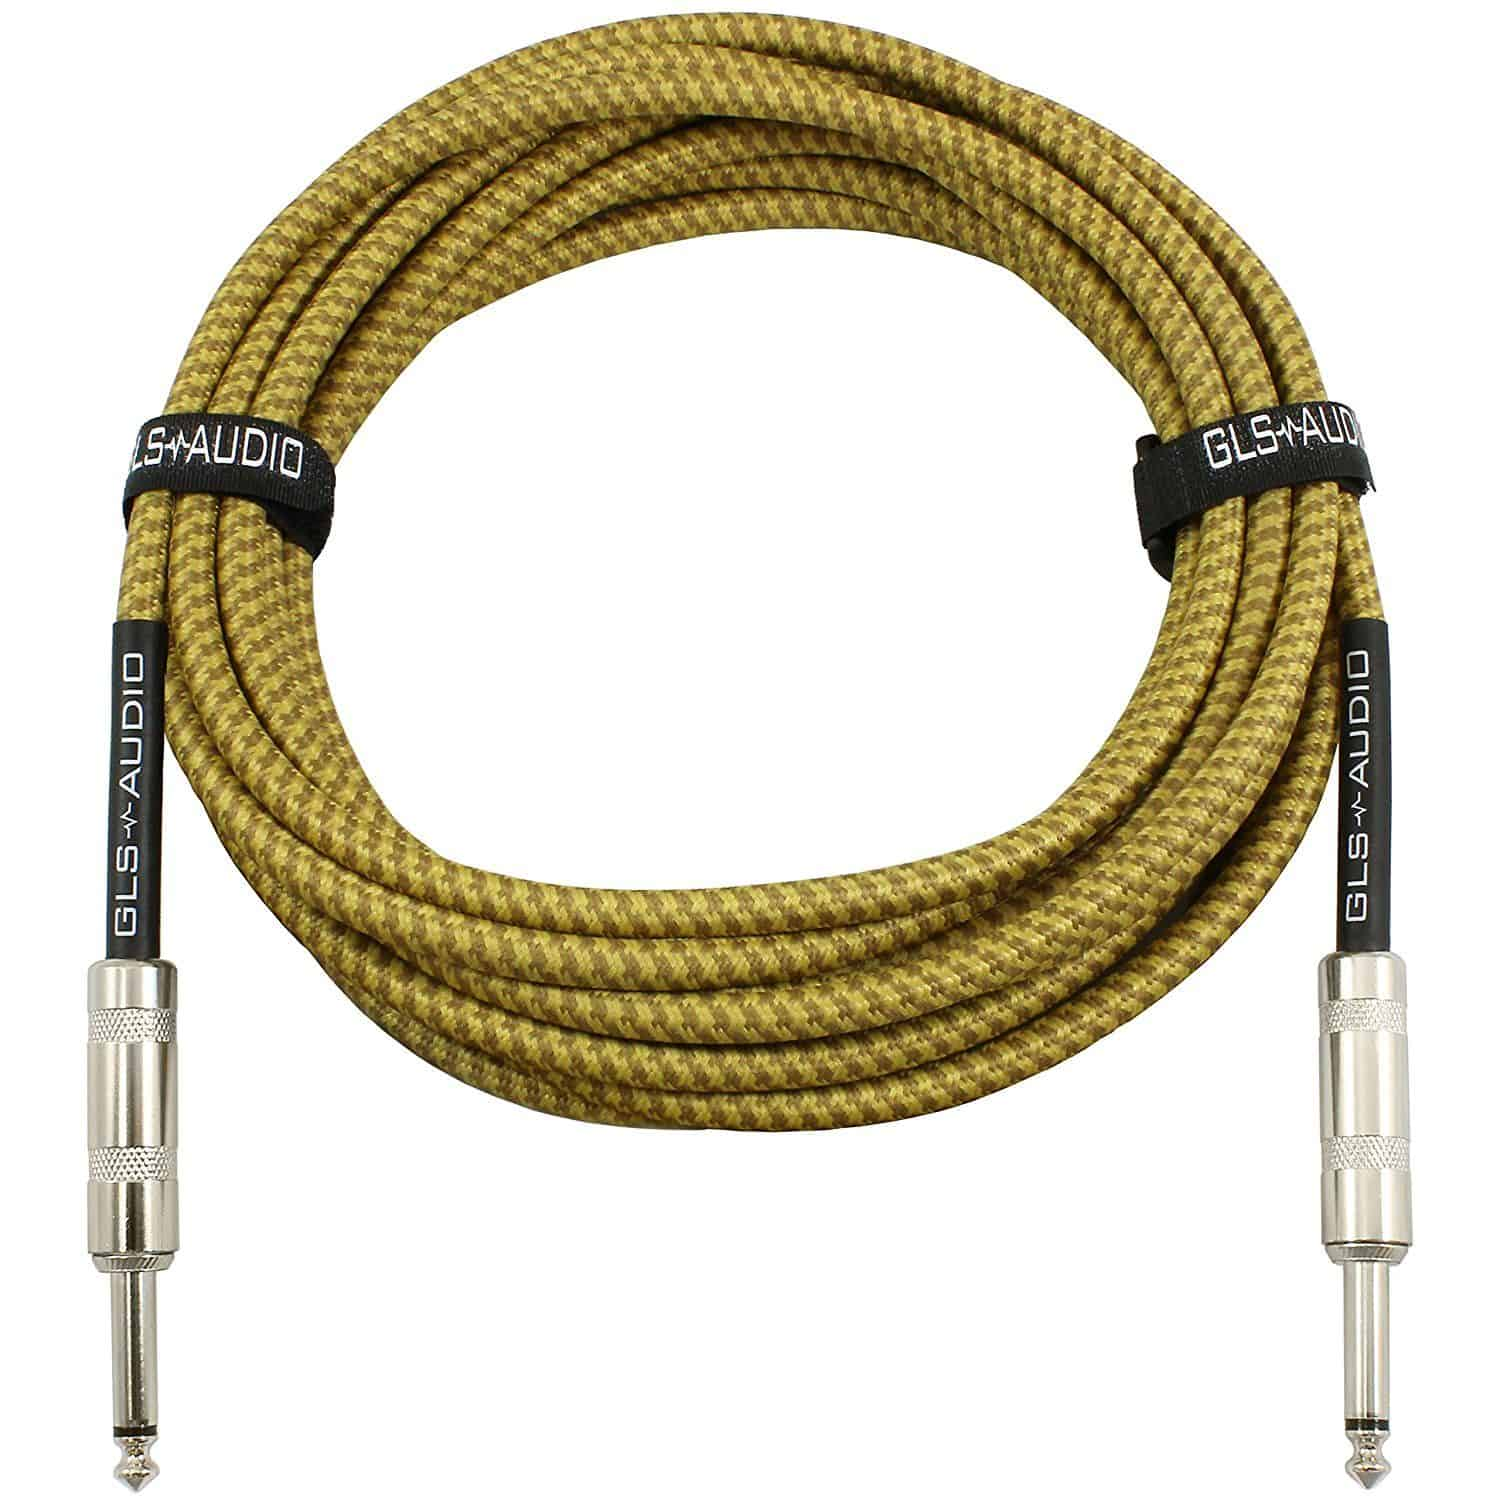 Guitar cables